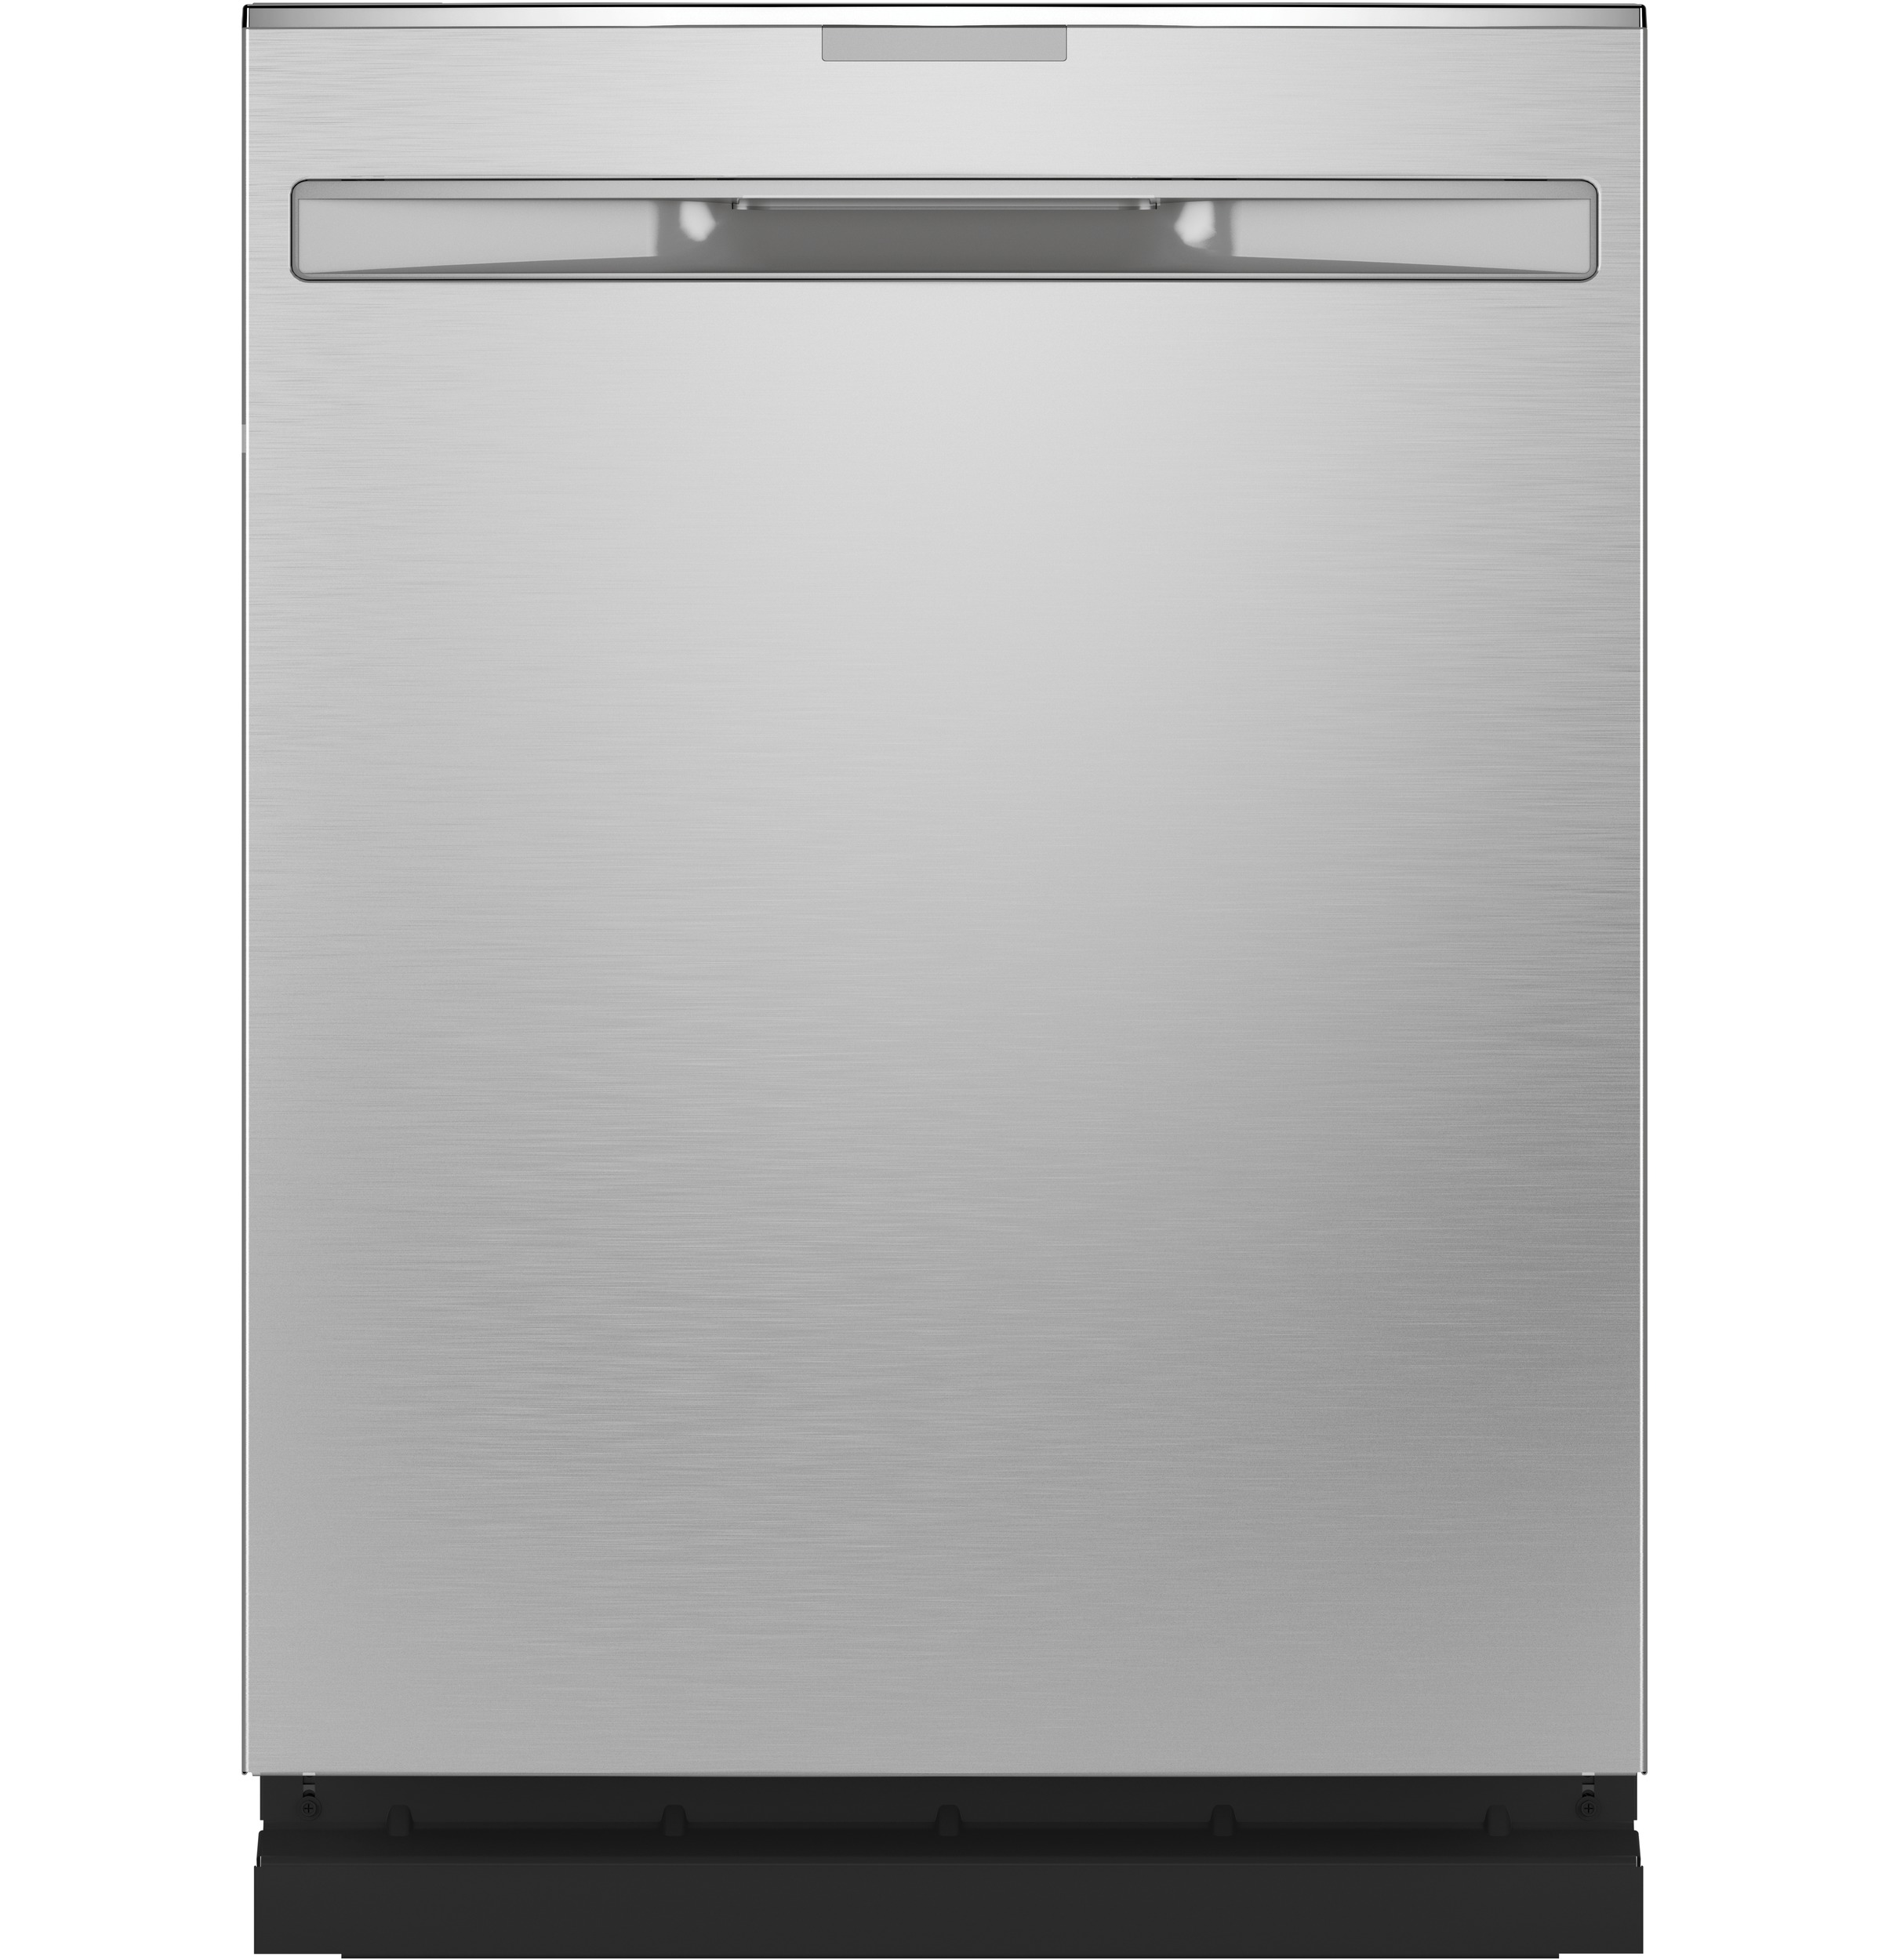 GE Profile GE Profile™ Fingerprint Resistant Top Control with Stainless Steel Interior Dishwasher with Sanitize Cycle & Dry Boost with Fan Assist